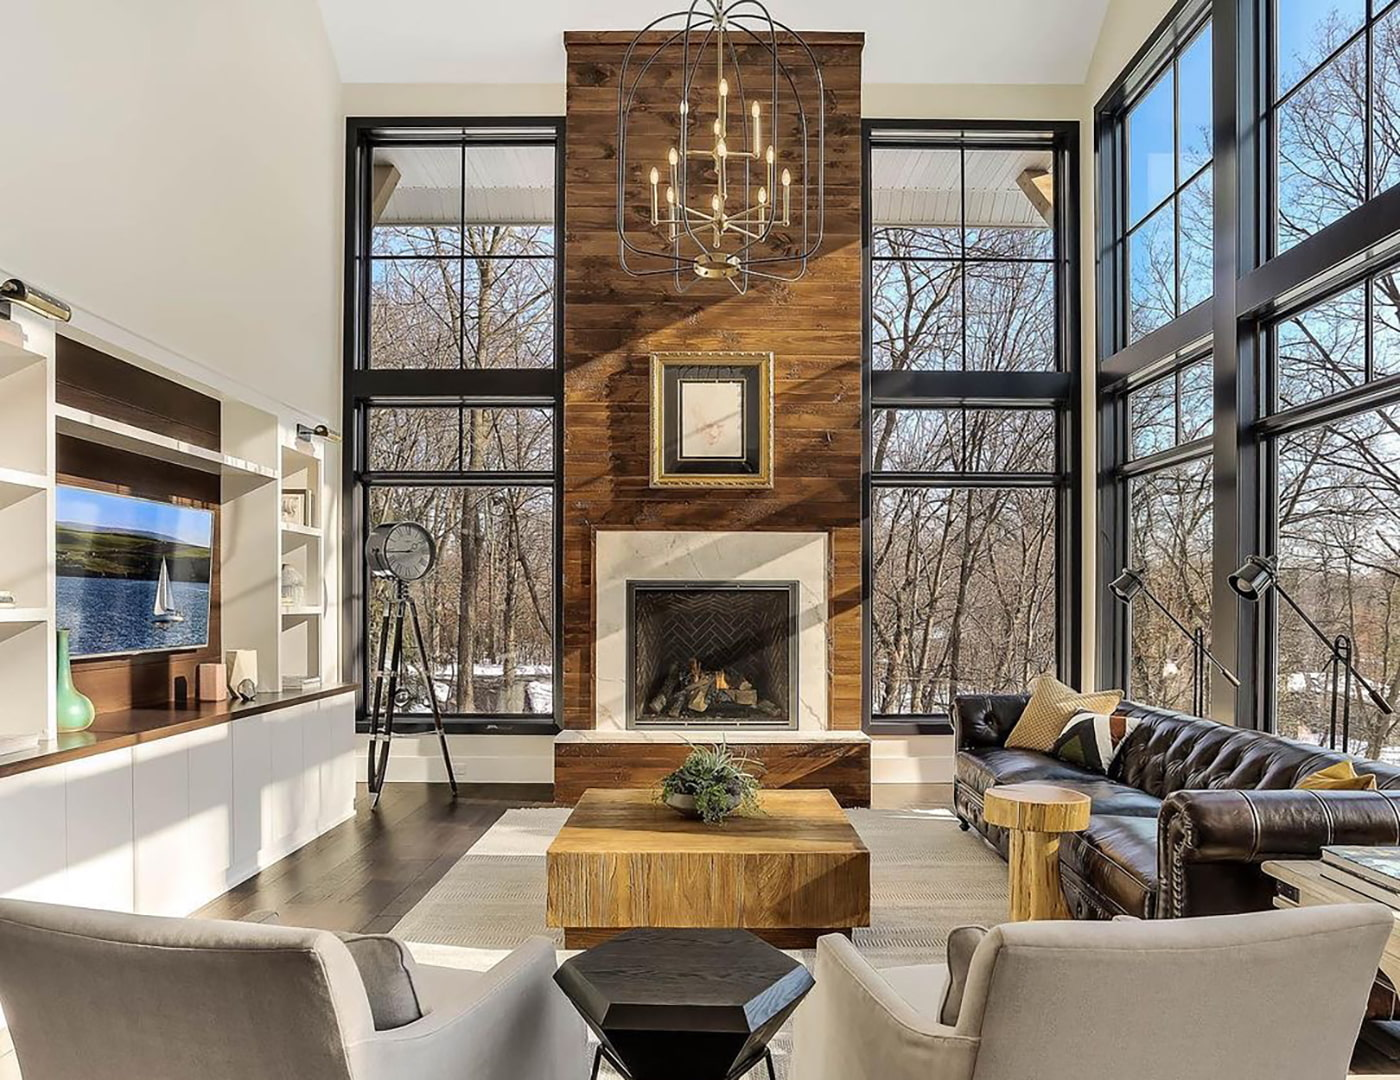 A living room with a high ceiling has floor to ceiling windows and a tall wood fireplace, topped with a grandiose chandelier.